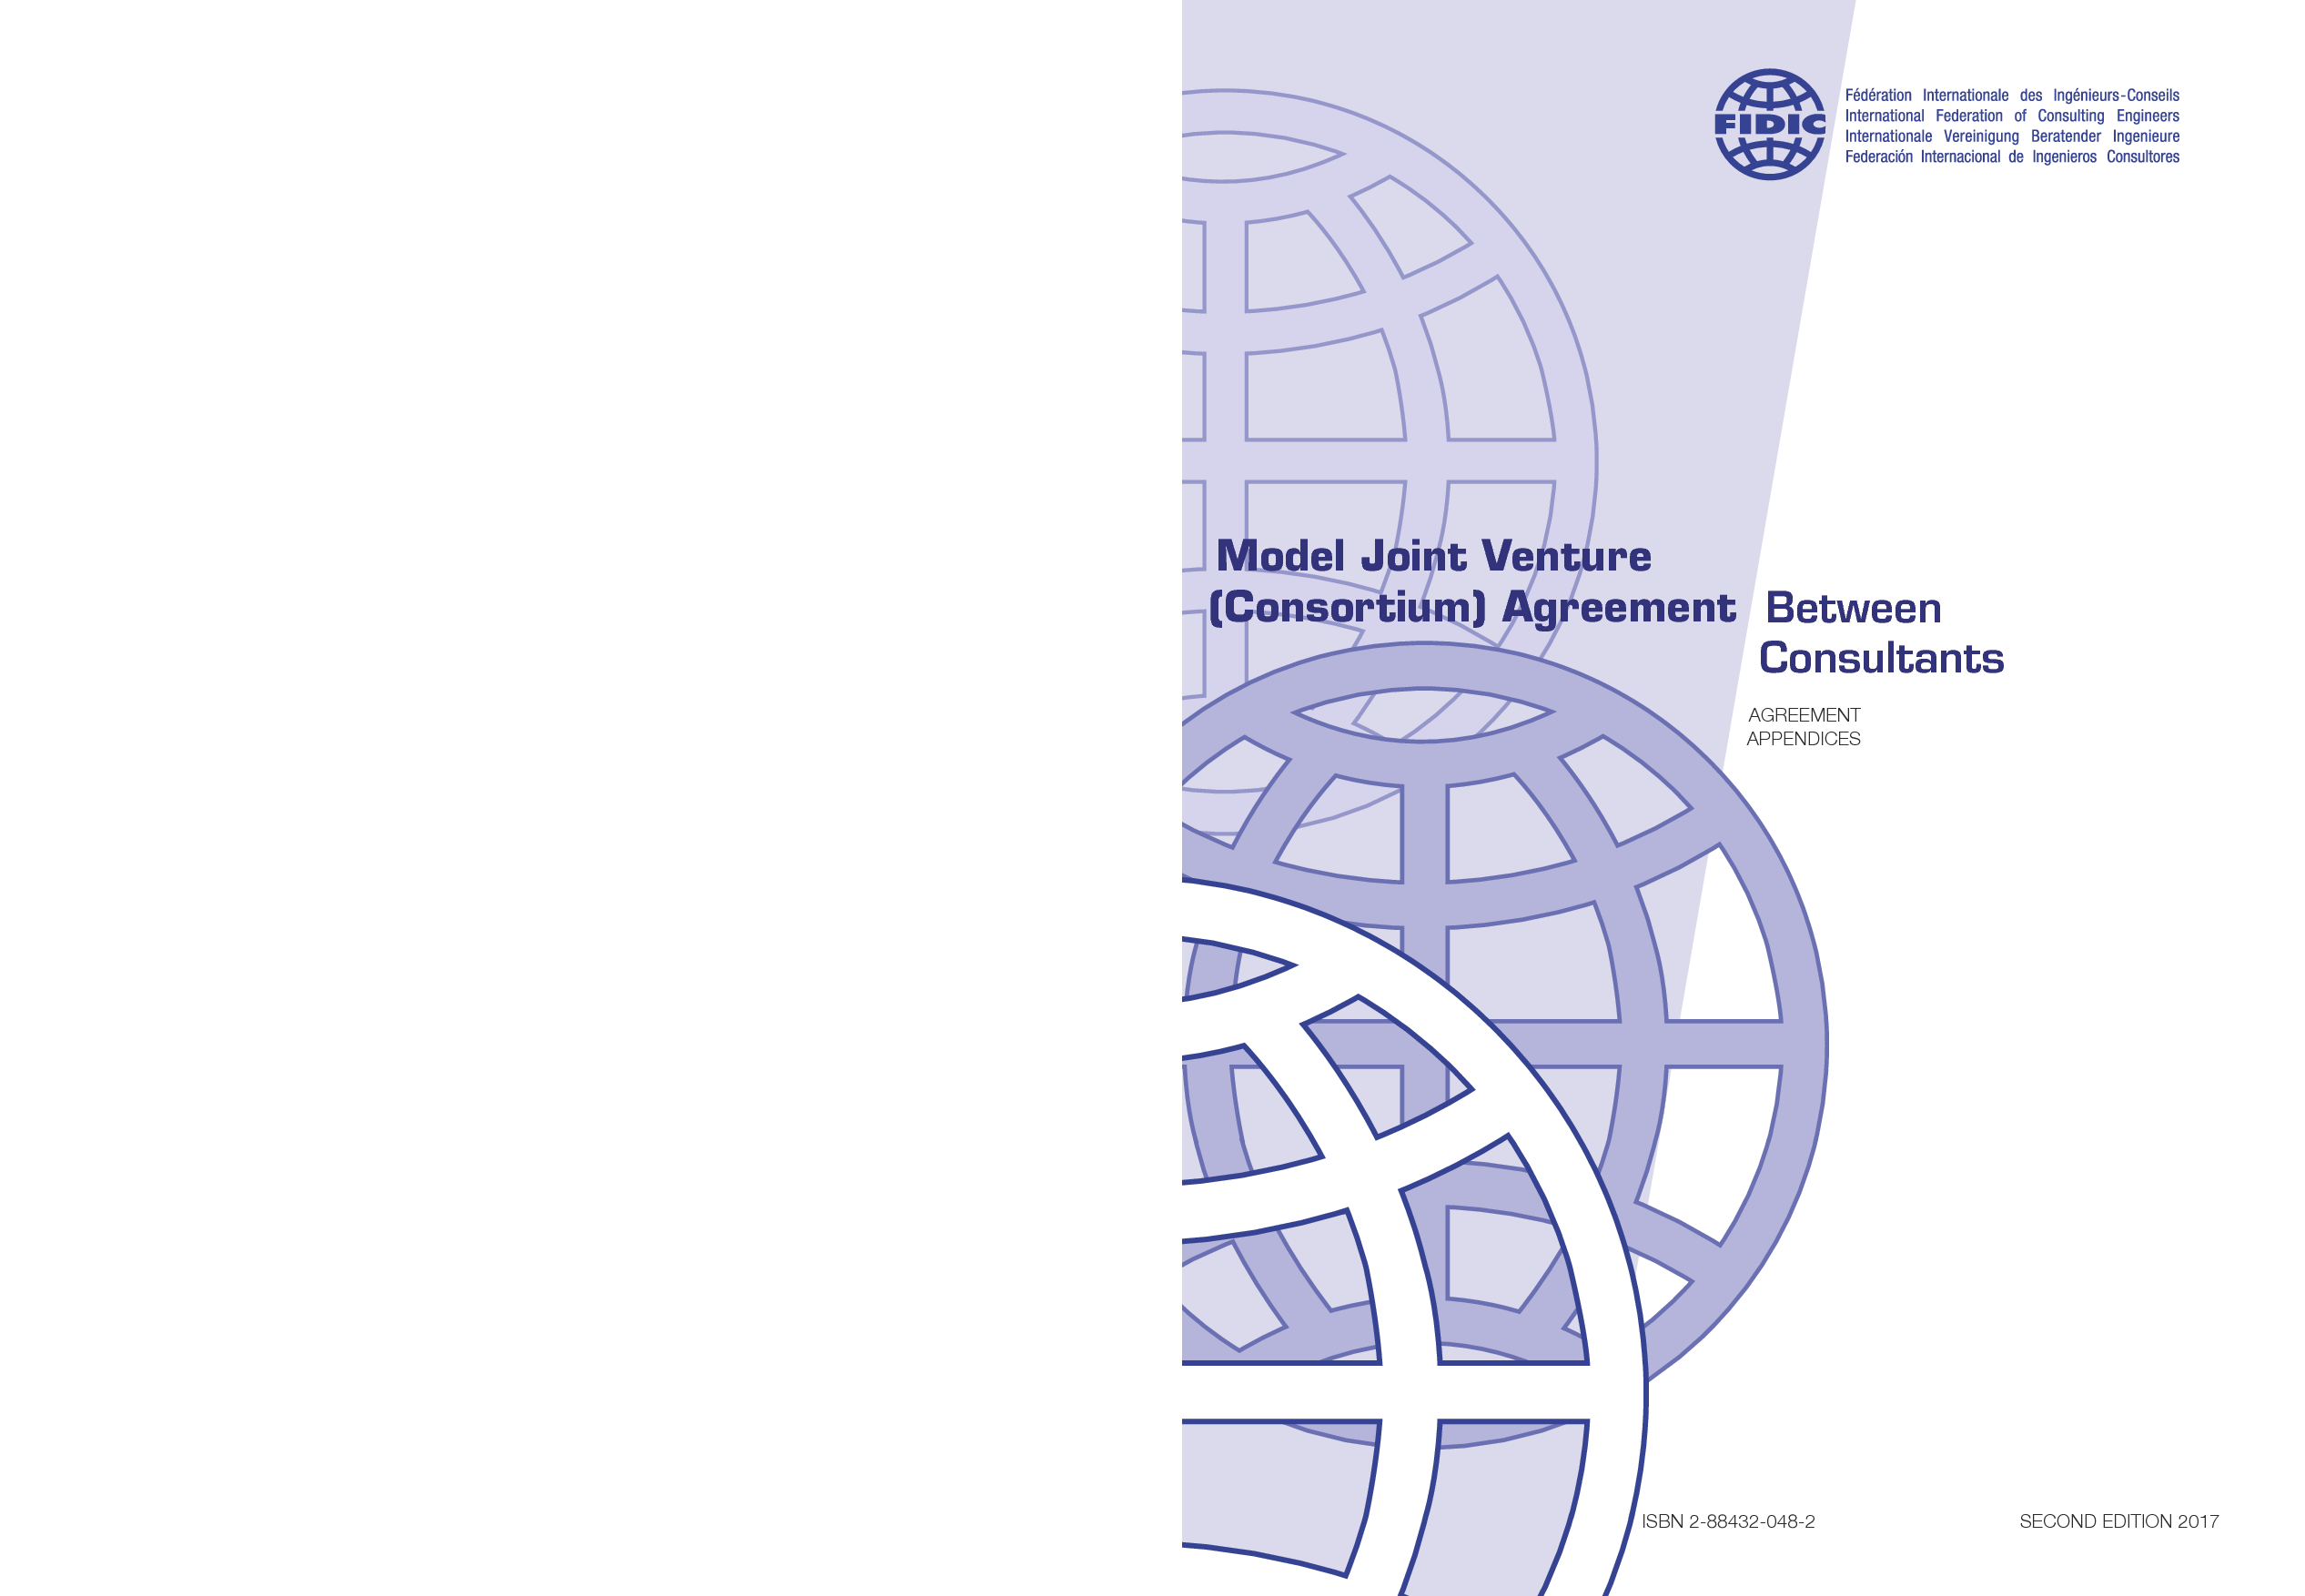 Model Joint Venture Consortium Agreement 2nd Edition 2017